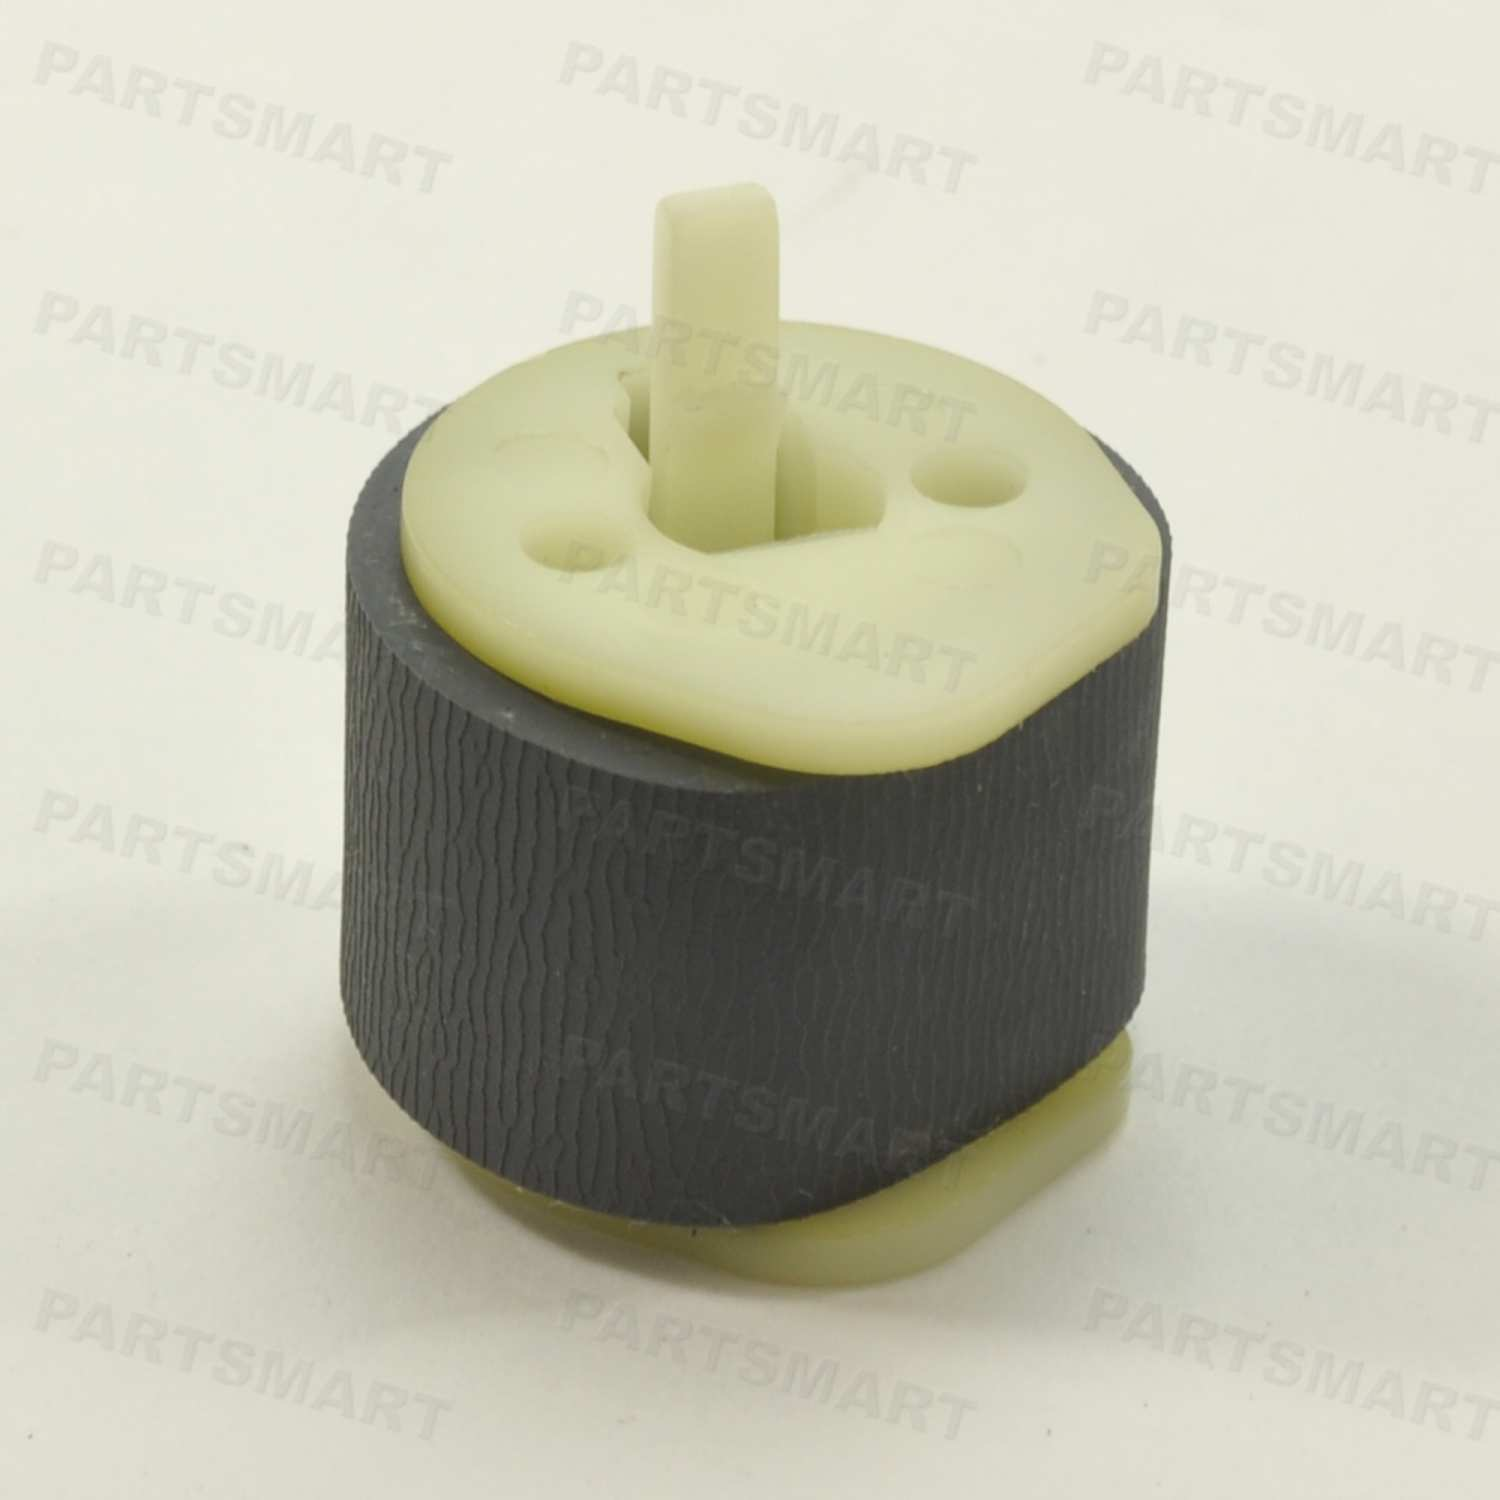 63H2314 Pickup Roller, MP Tray for Xerox 4317, DocuPrint 4517